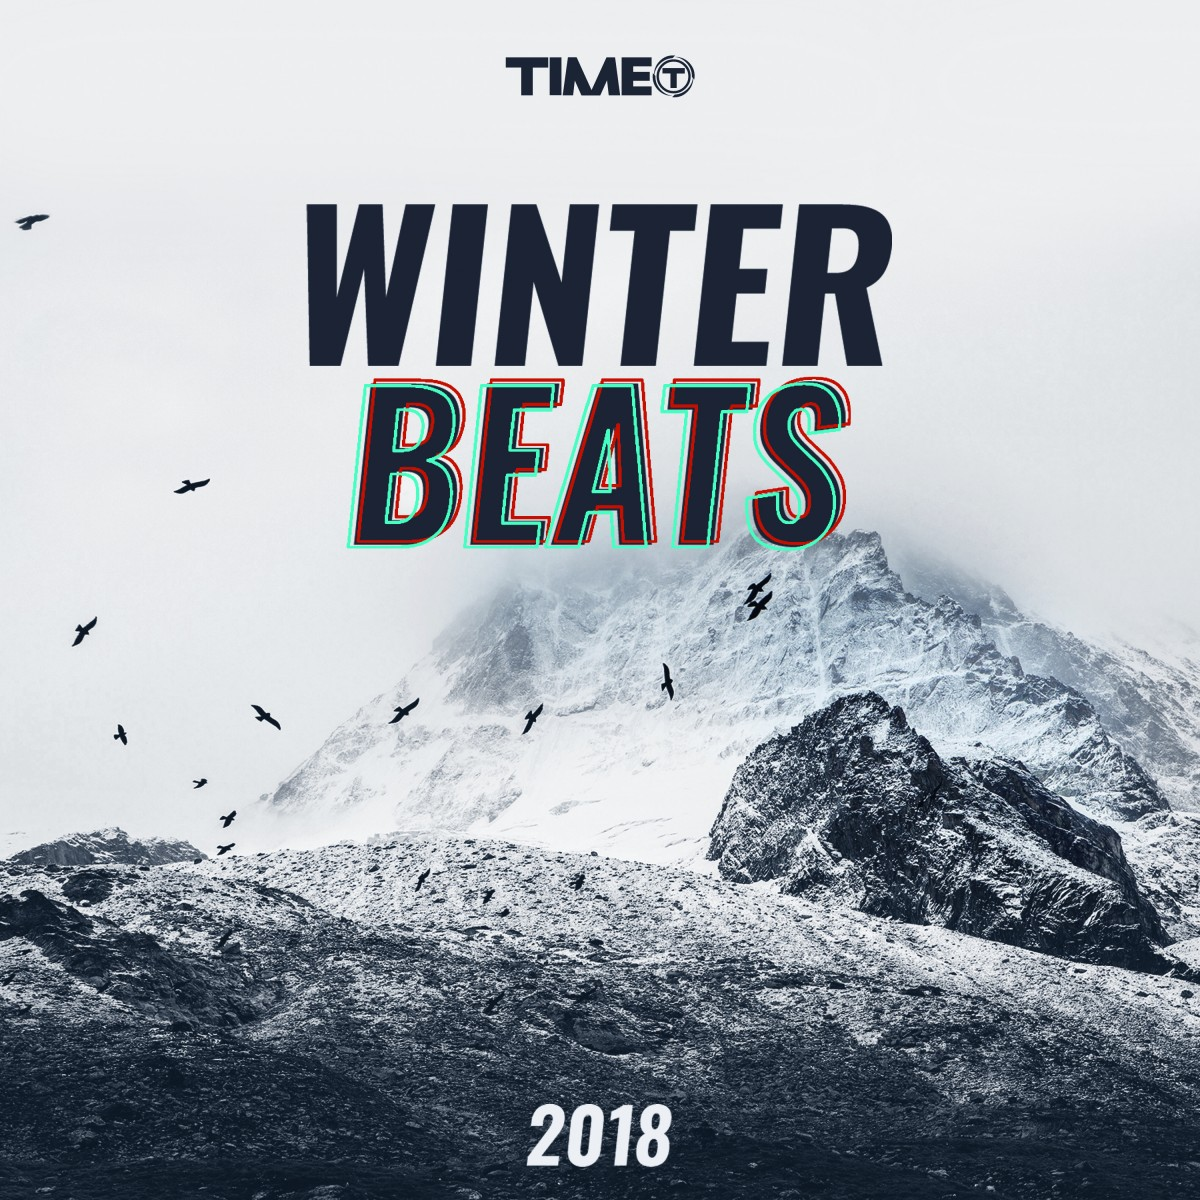 WINTER BEATS 2018